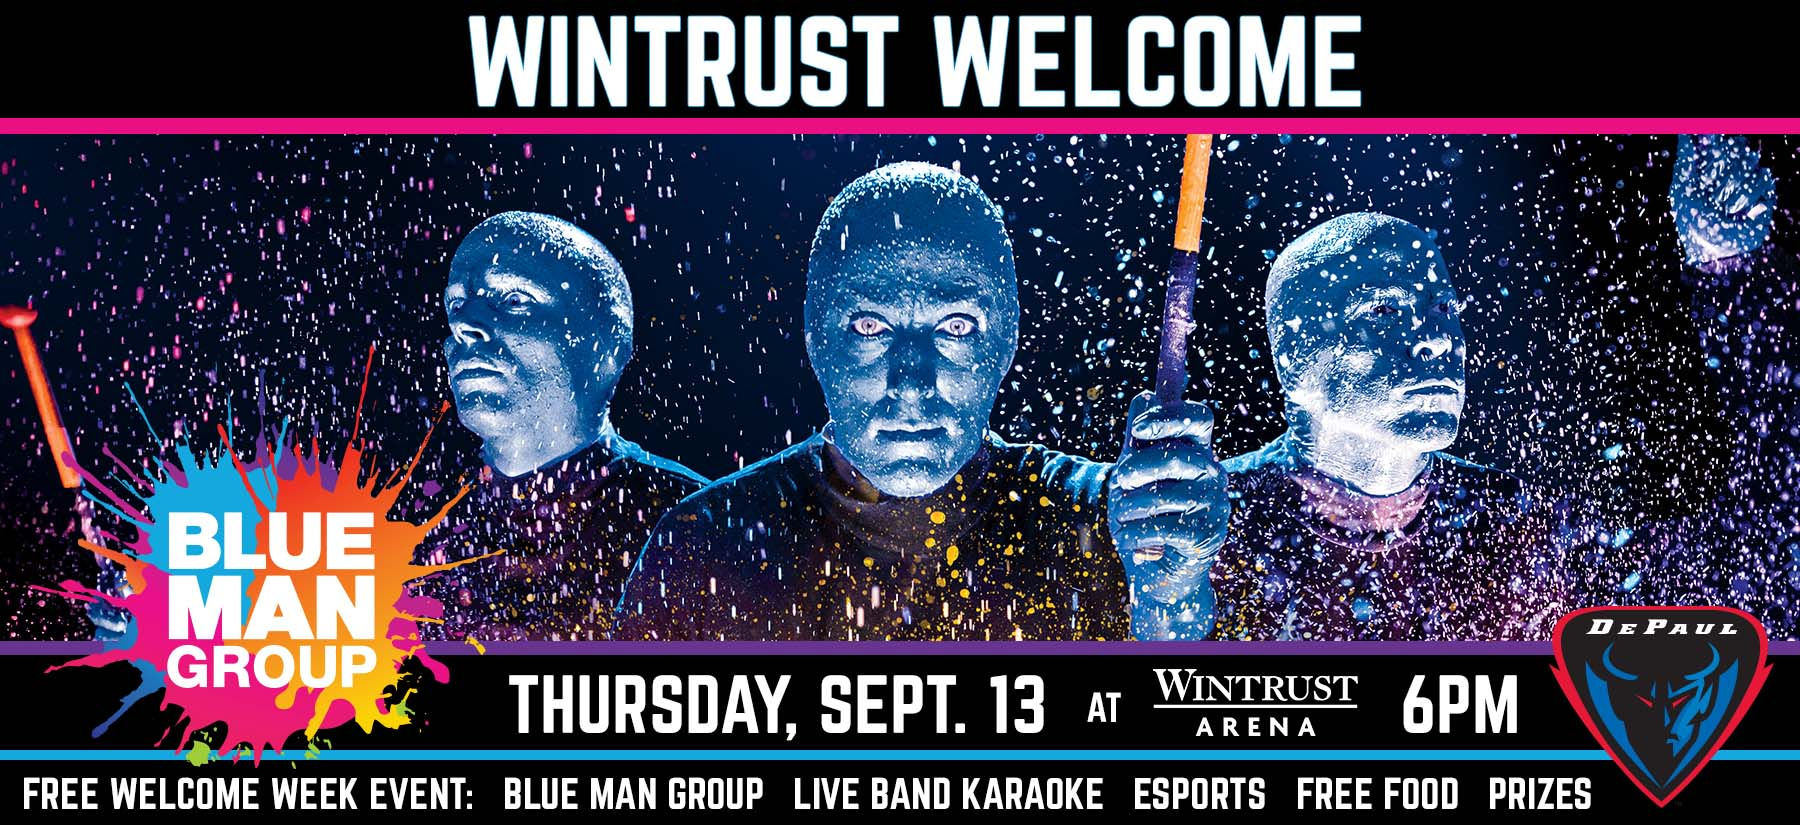 Wintrust welcome